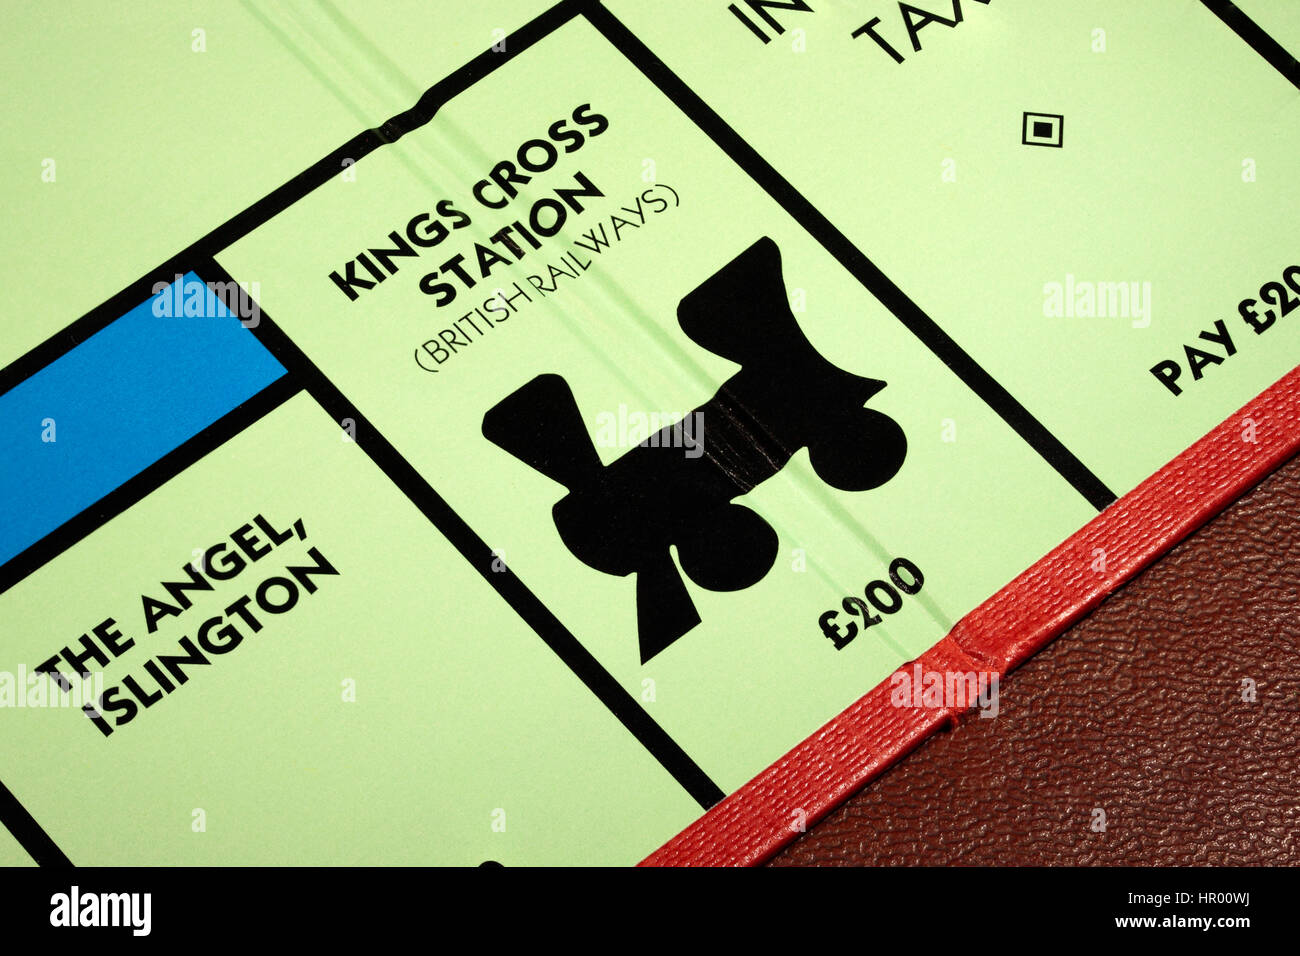 Monopoly board game Kings Cross Station British Railways £200 with The Angel Islington to the left and Income - Stock Image